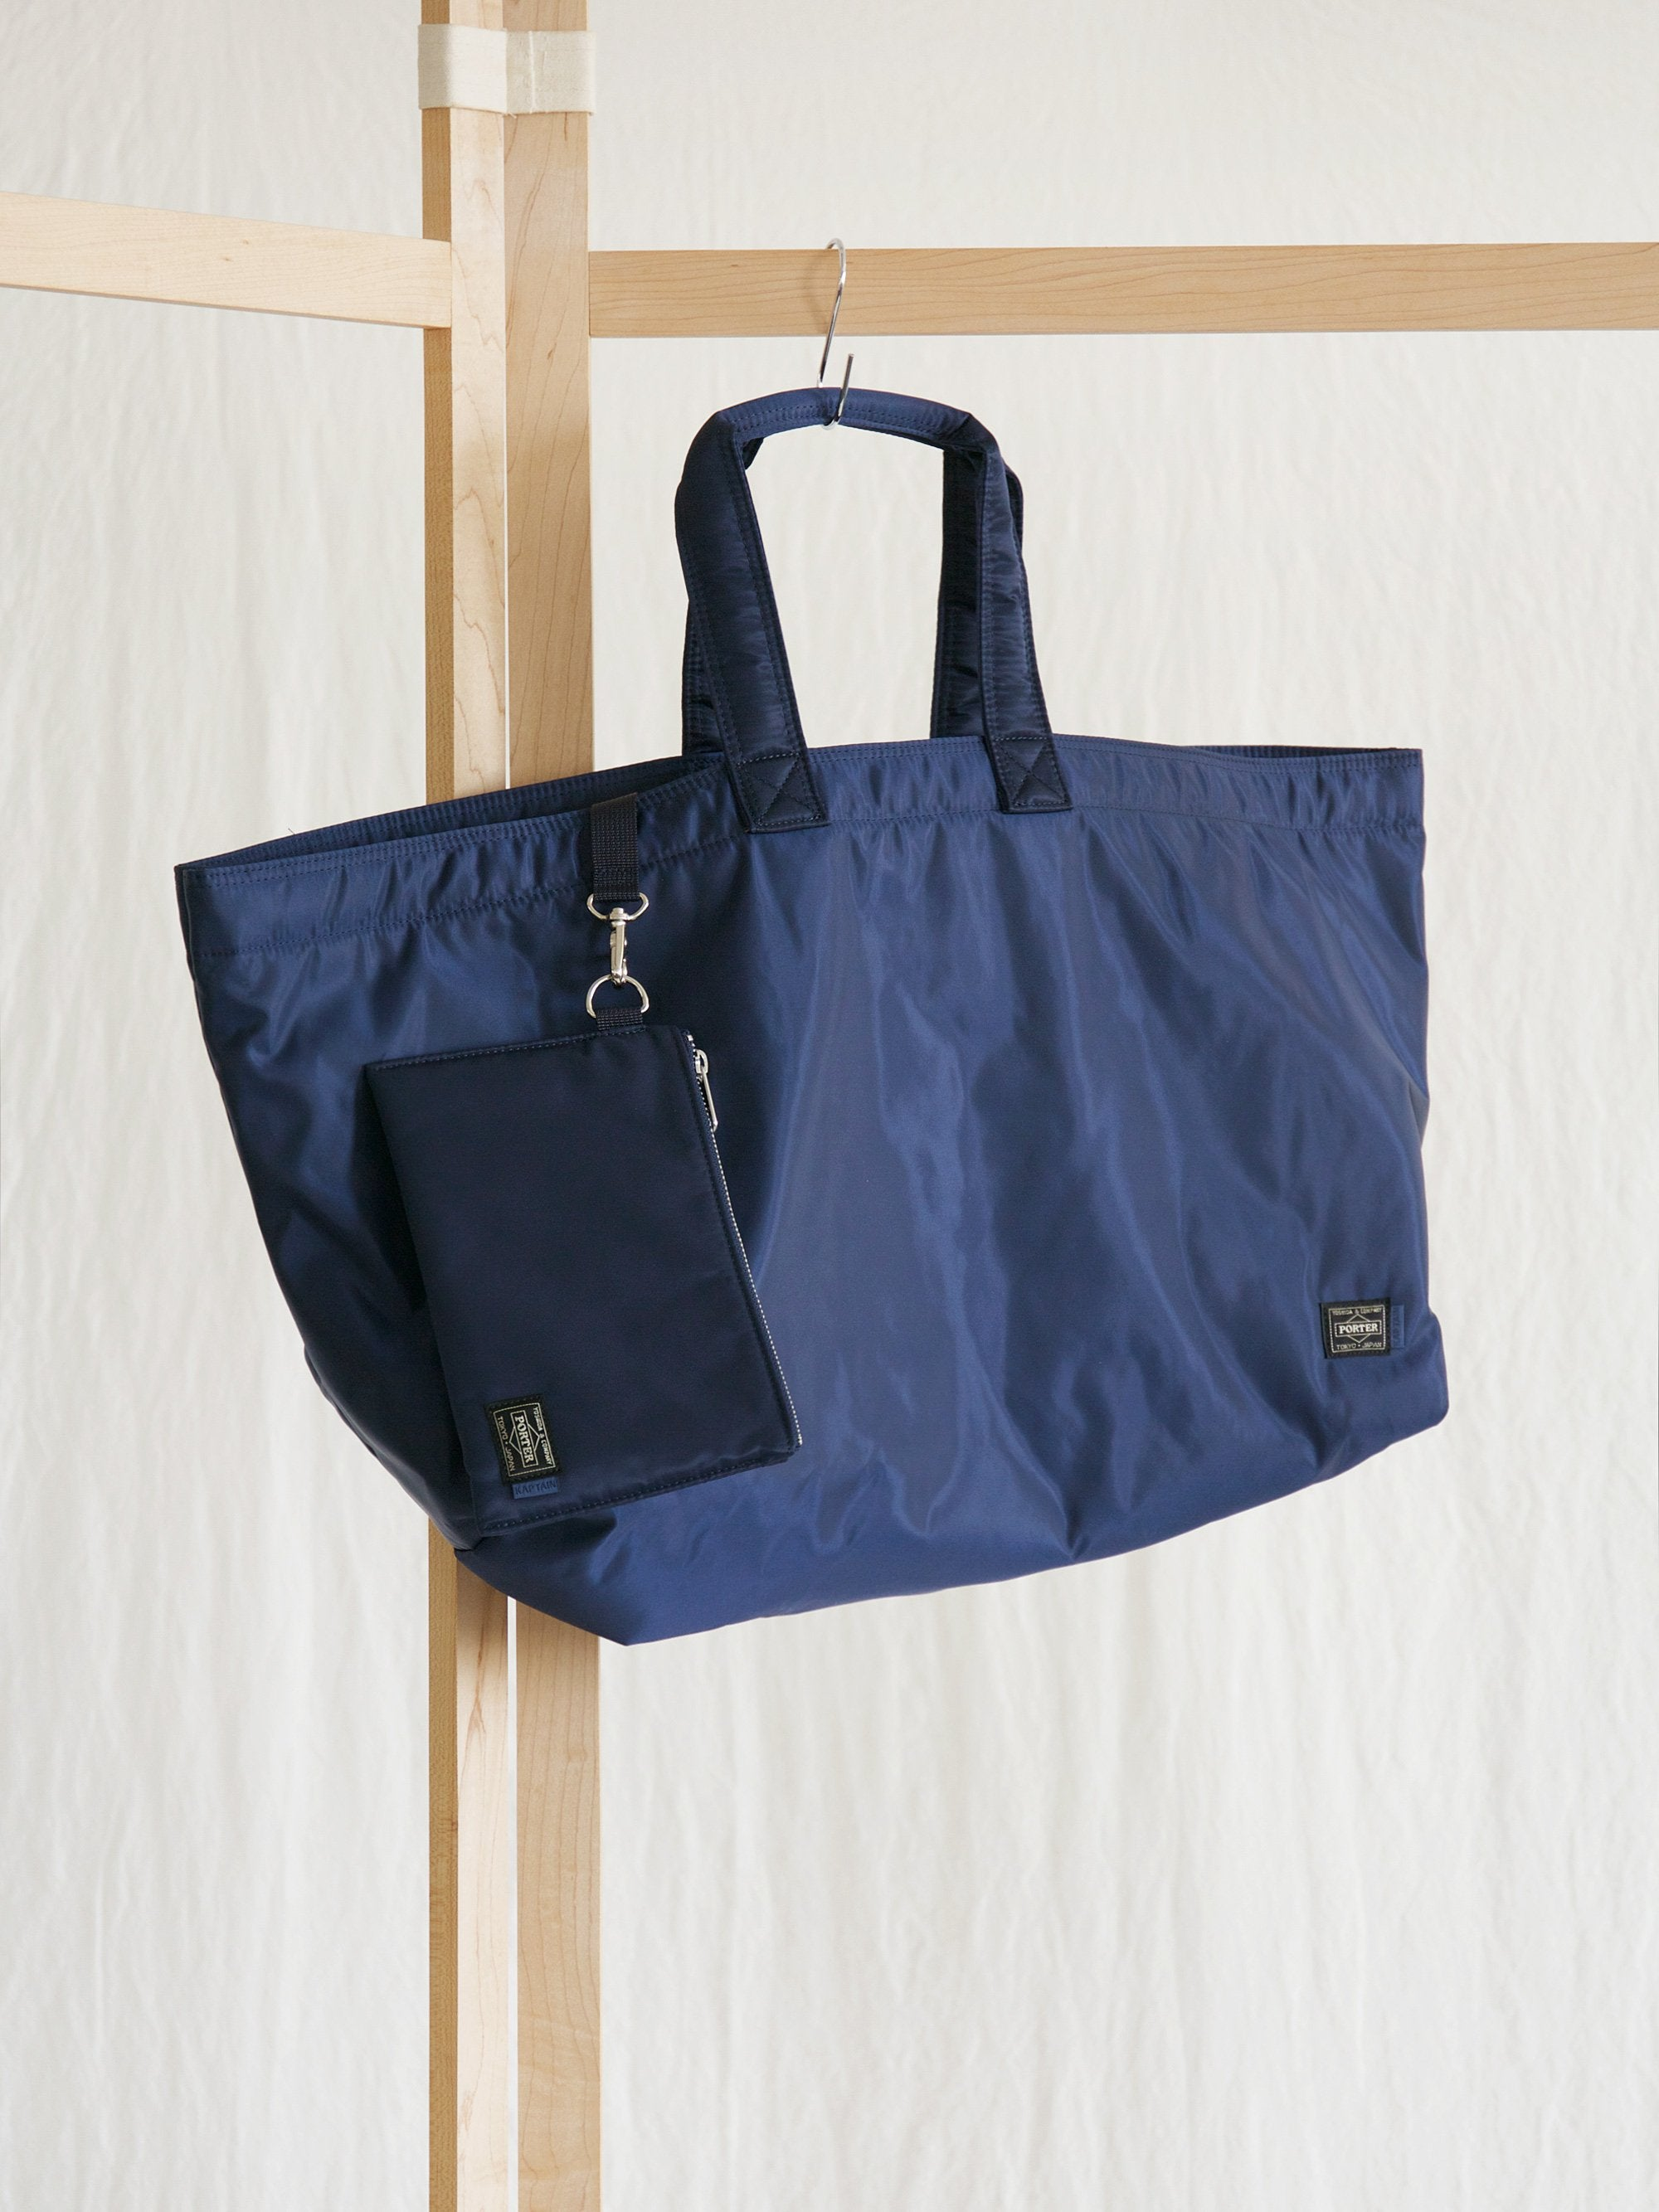 Namu Shop - Kaptain Sunshine Marche Tote - Navy